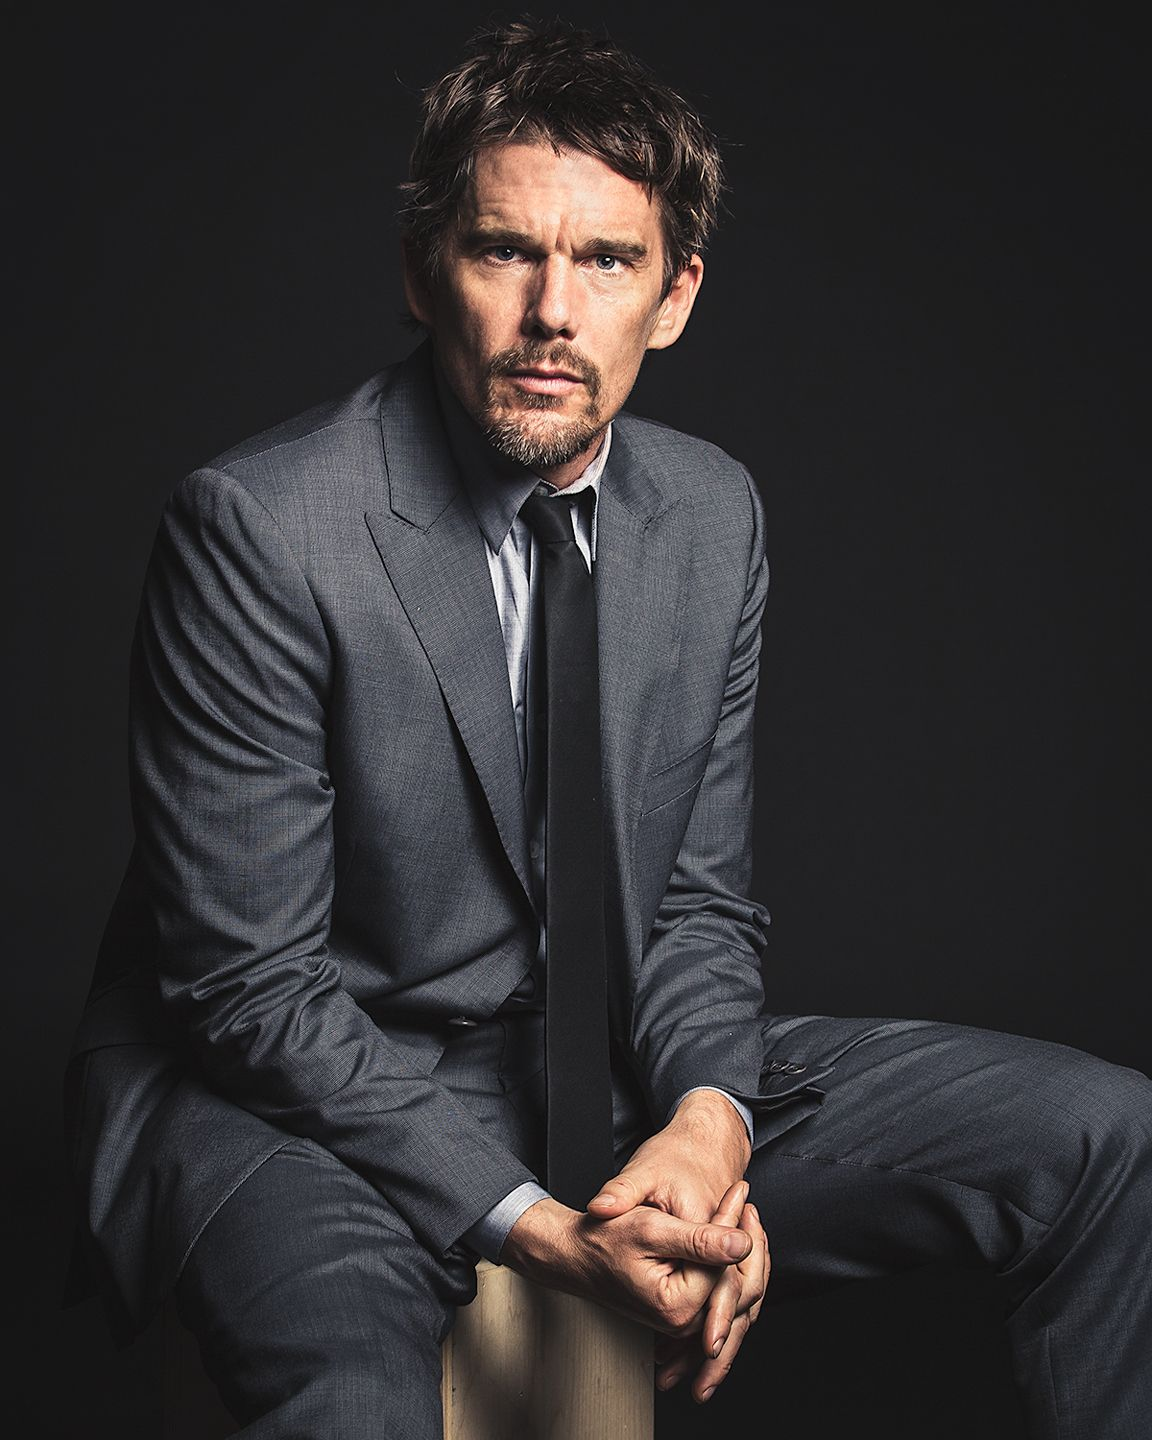 Portraits: The Toronto International Film Festival, 2014 ...